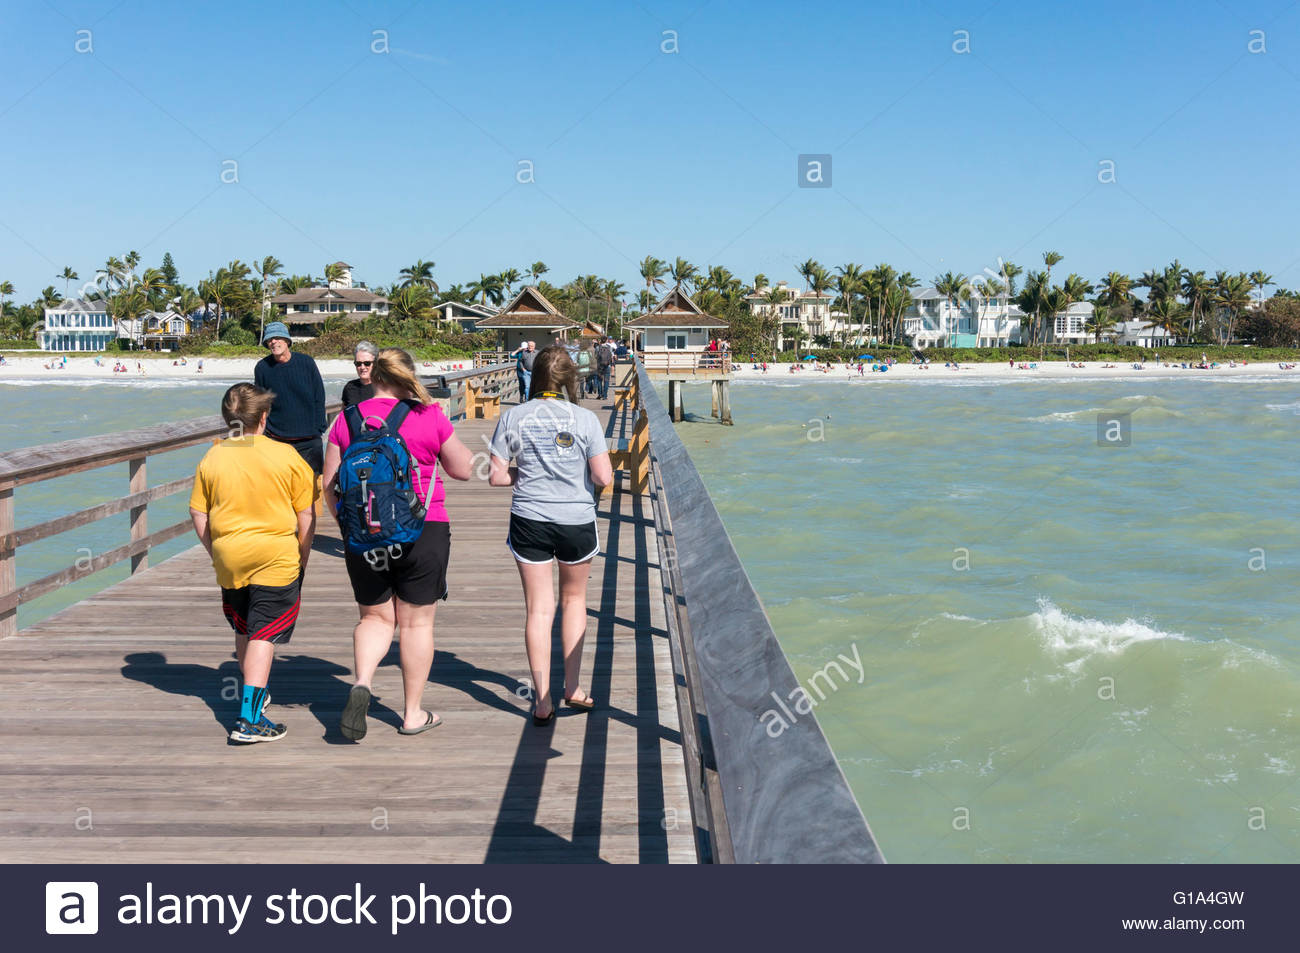 A windy day makes for rough seas along the city pier in Naples, Florida - Stock Image